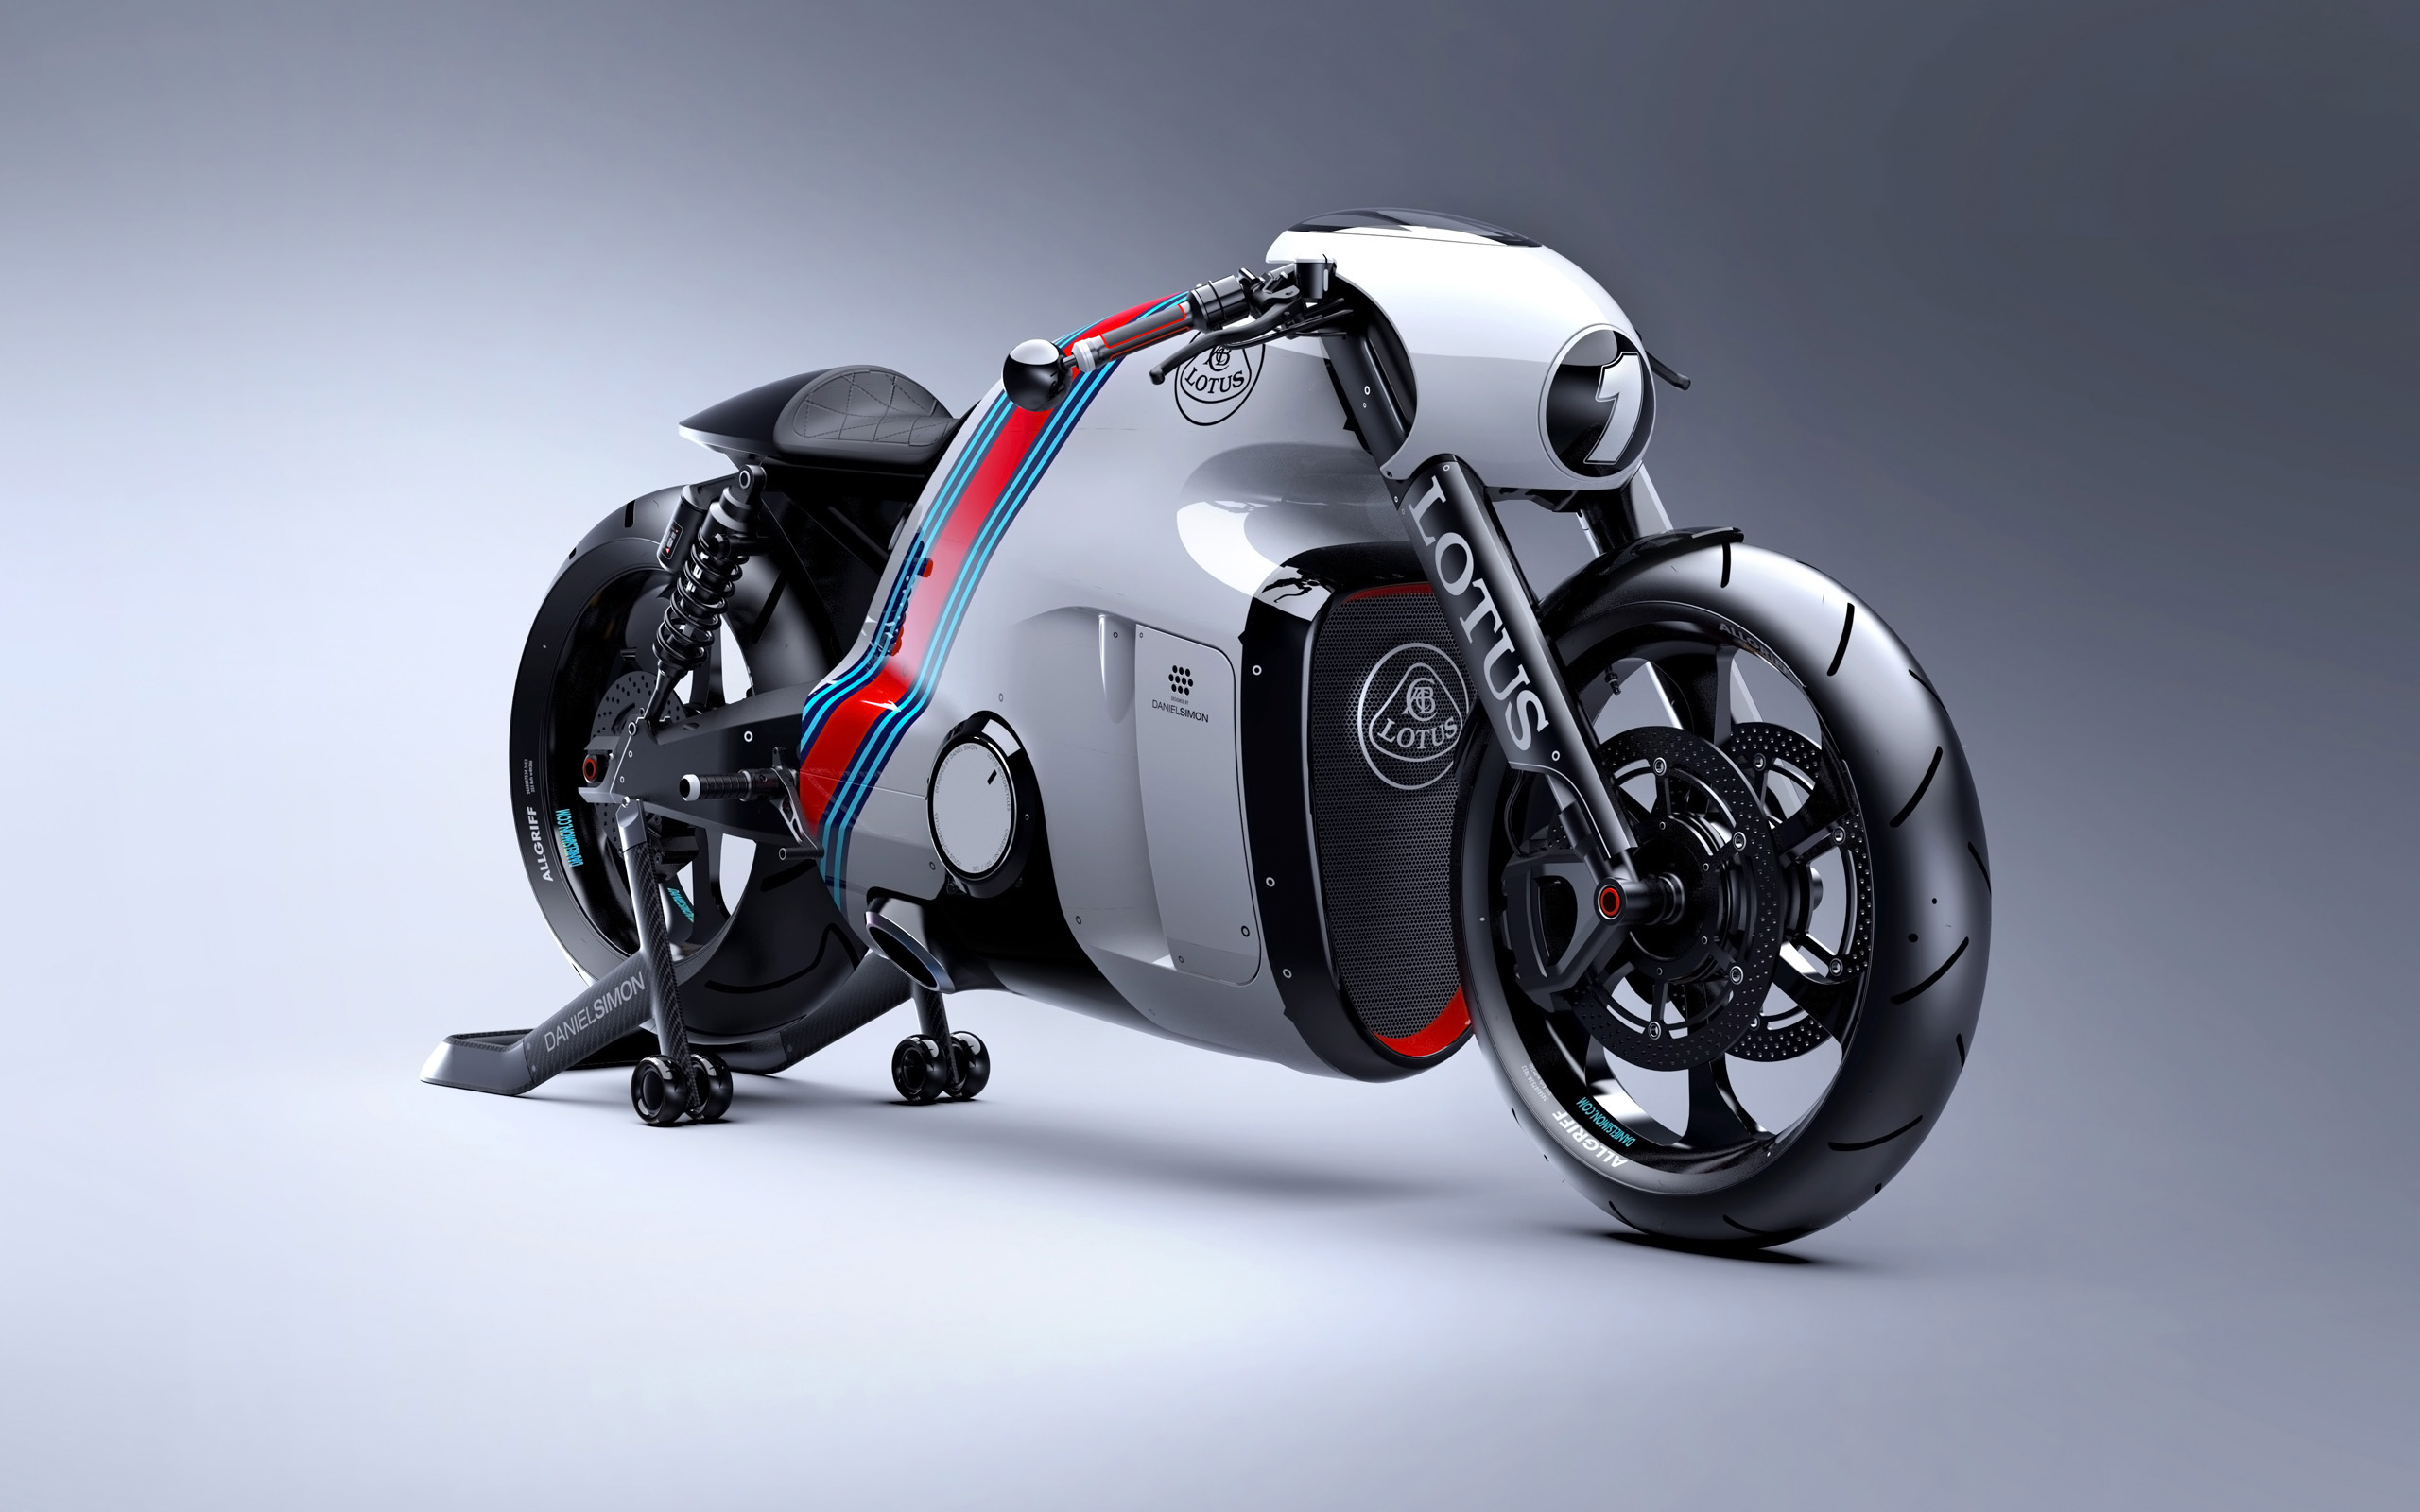 2014 Lotus Motorcycles C 01 196.65 Kb